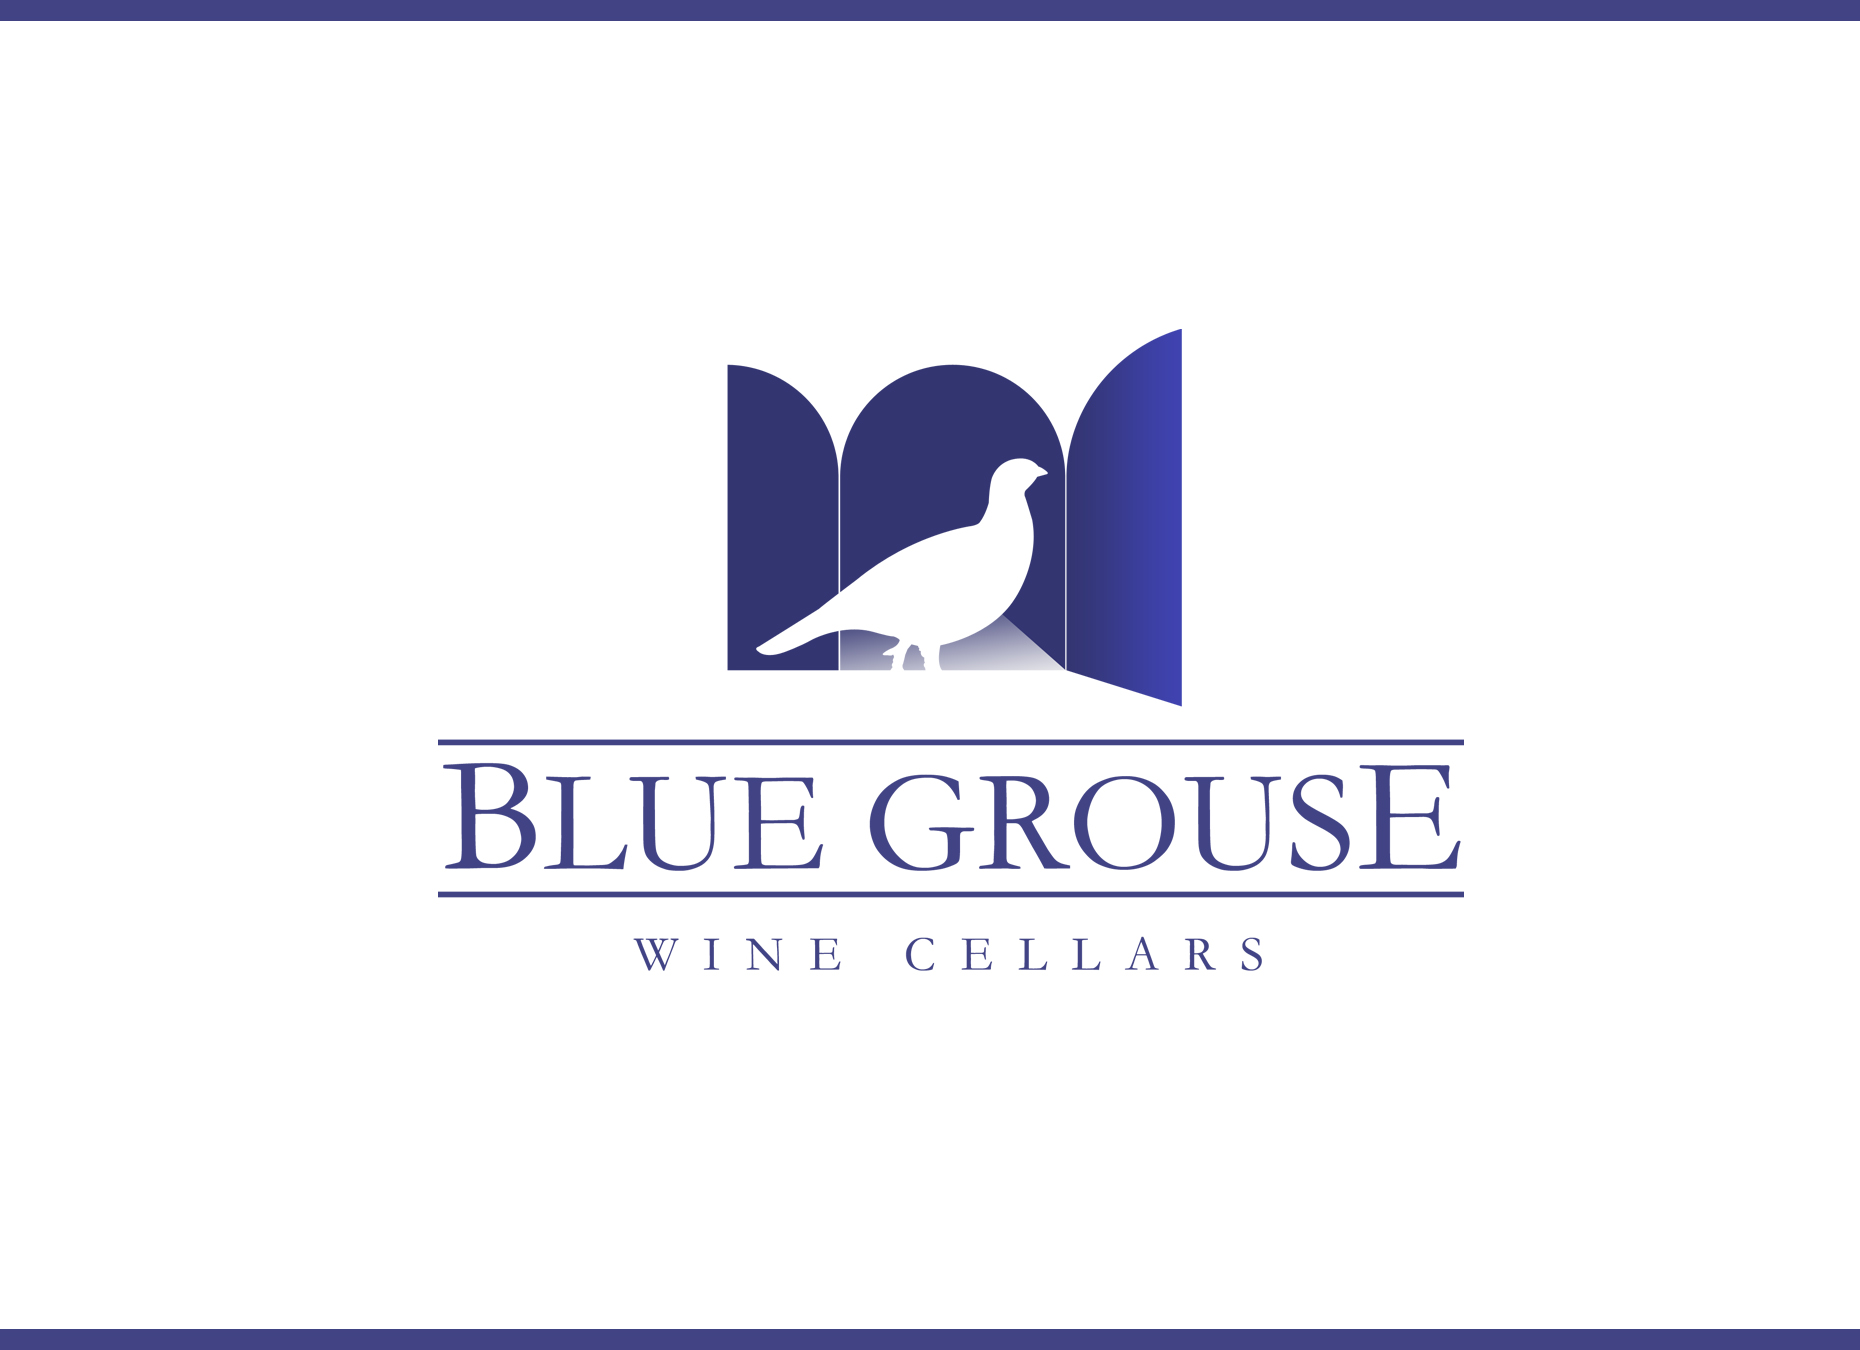 Logo Design by omARTist - Entry No. 138 in the Logo Design Contest Creative Logo Design for Blue Grouse Wine Cellars.